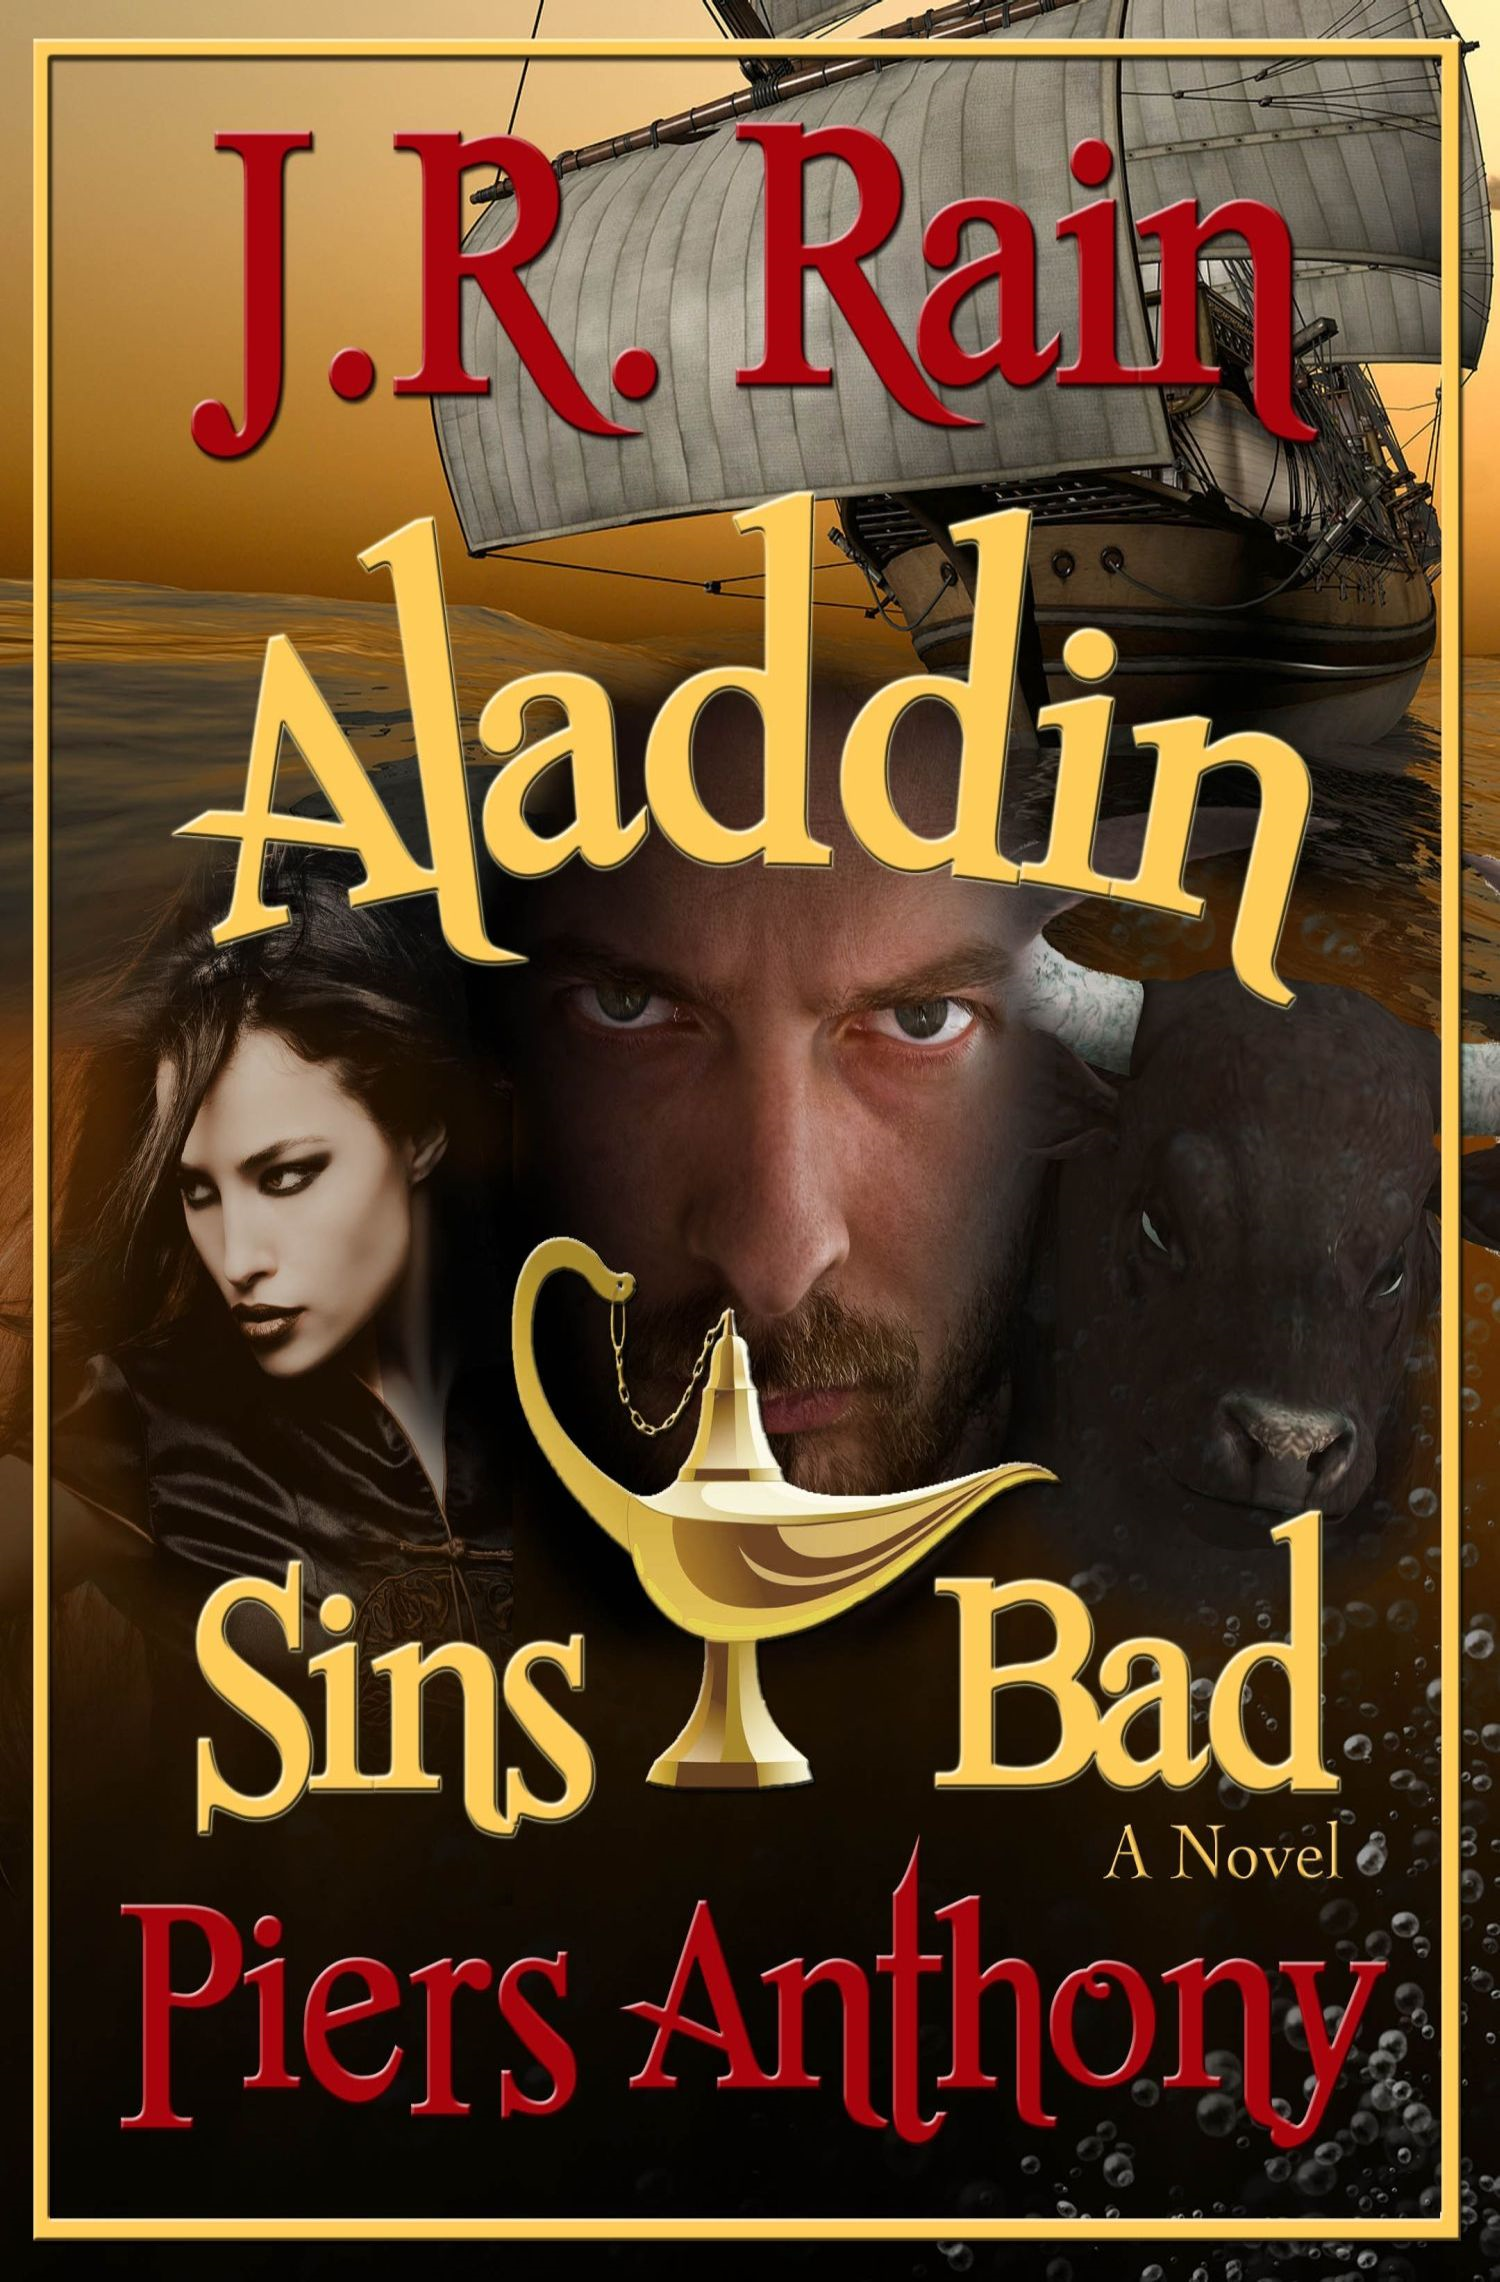 Aladdin Sins Bad (The Aladdin Trilogy #2)